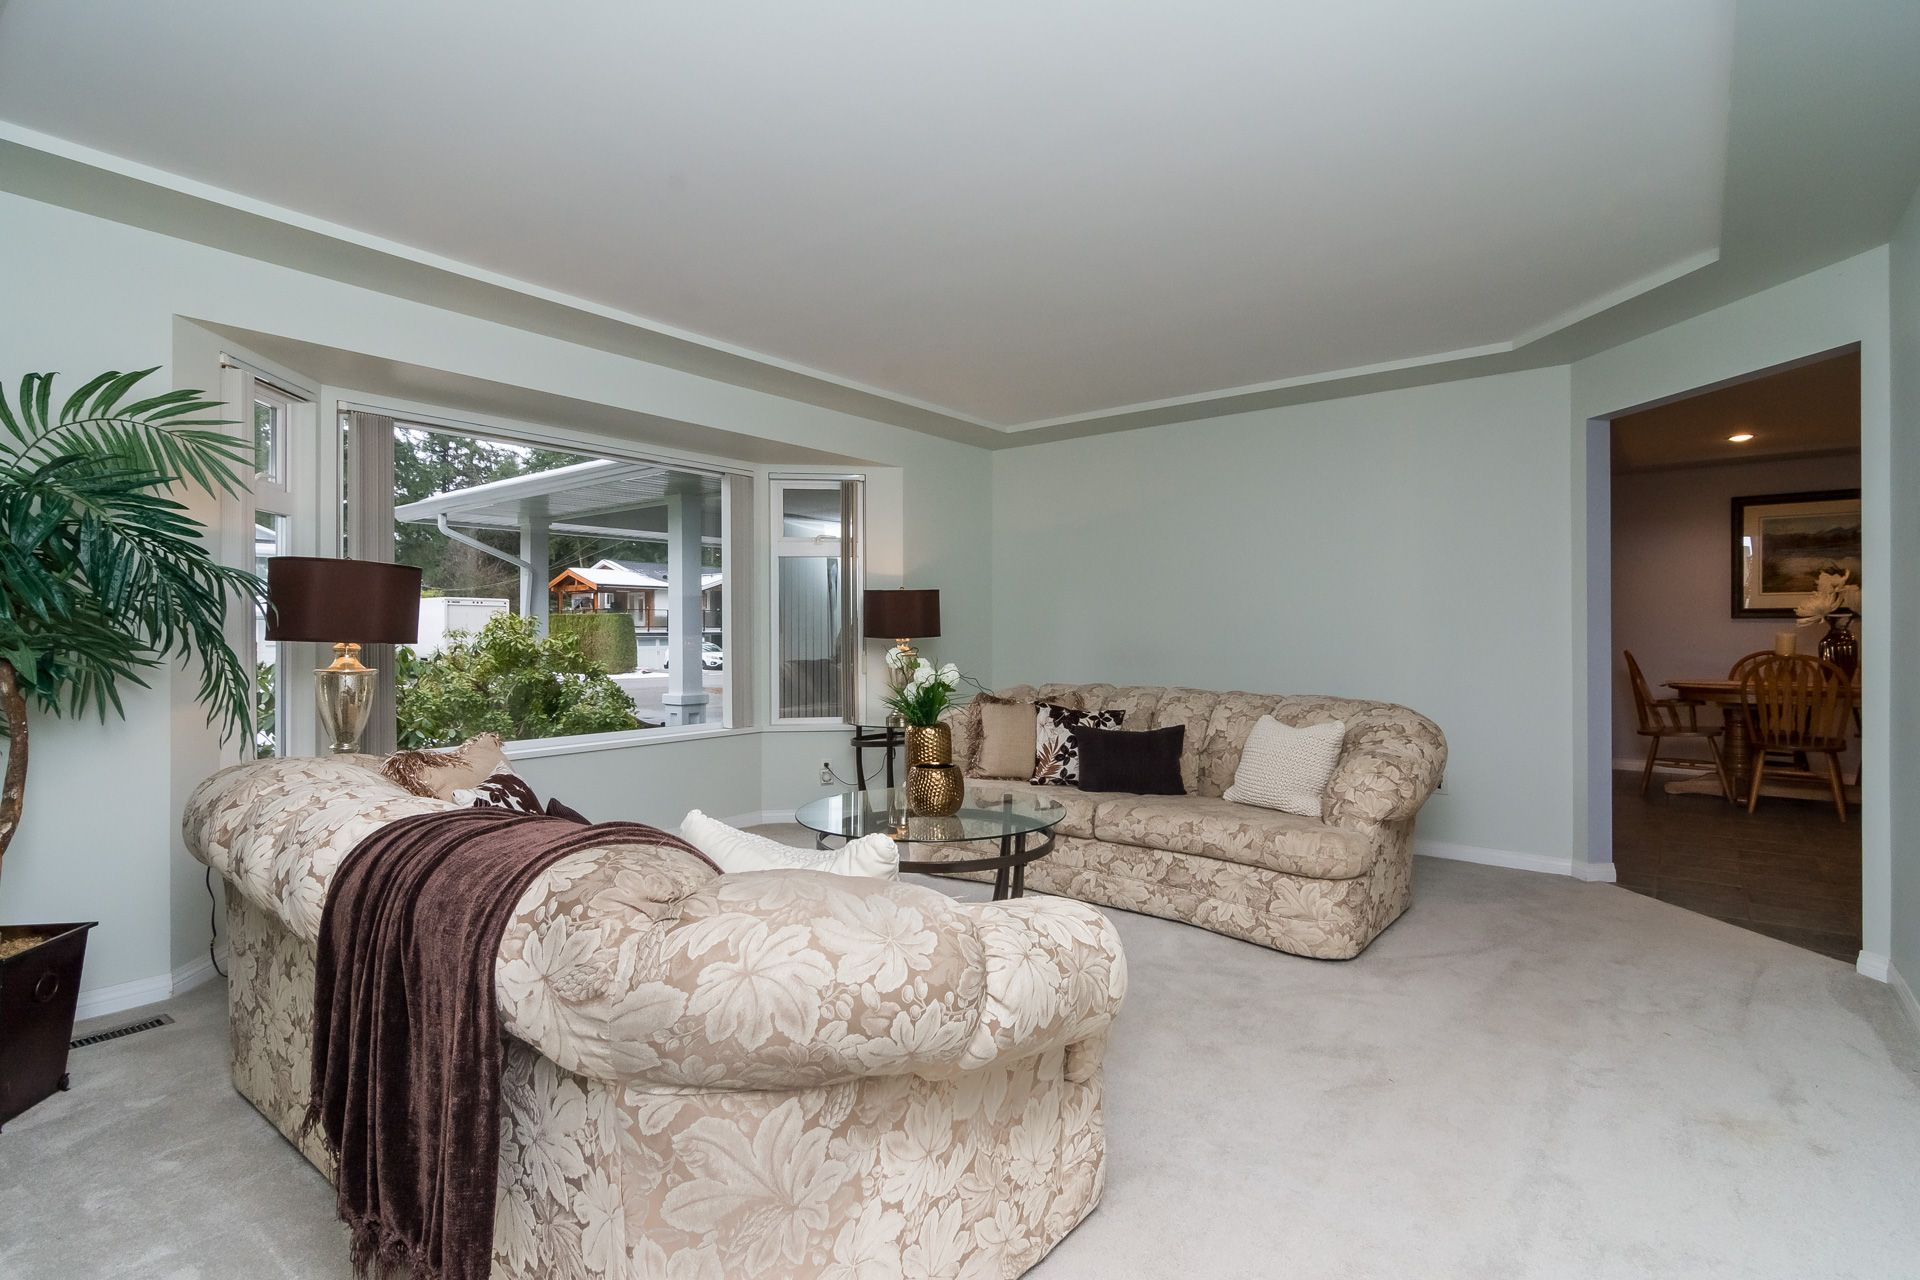 """Photo 8: Photos: 19941 37 Avenue in Langley: Brookswood Langley House for sale in """"Brookswood"""" : MLS®# R2240474"""